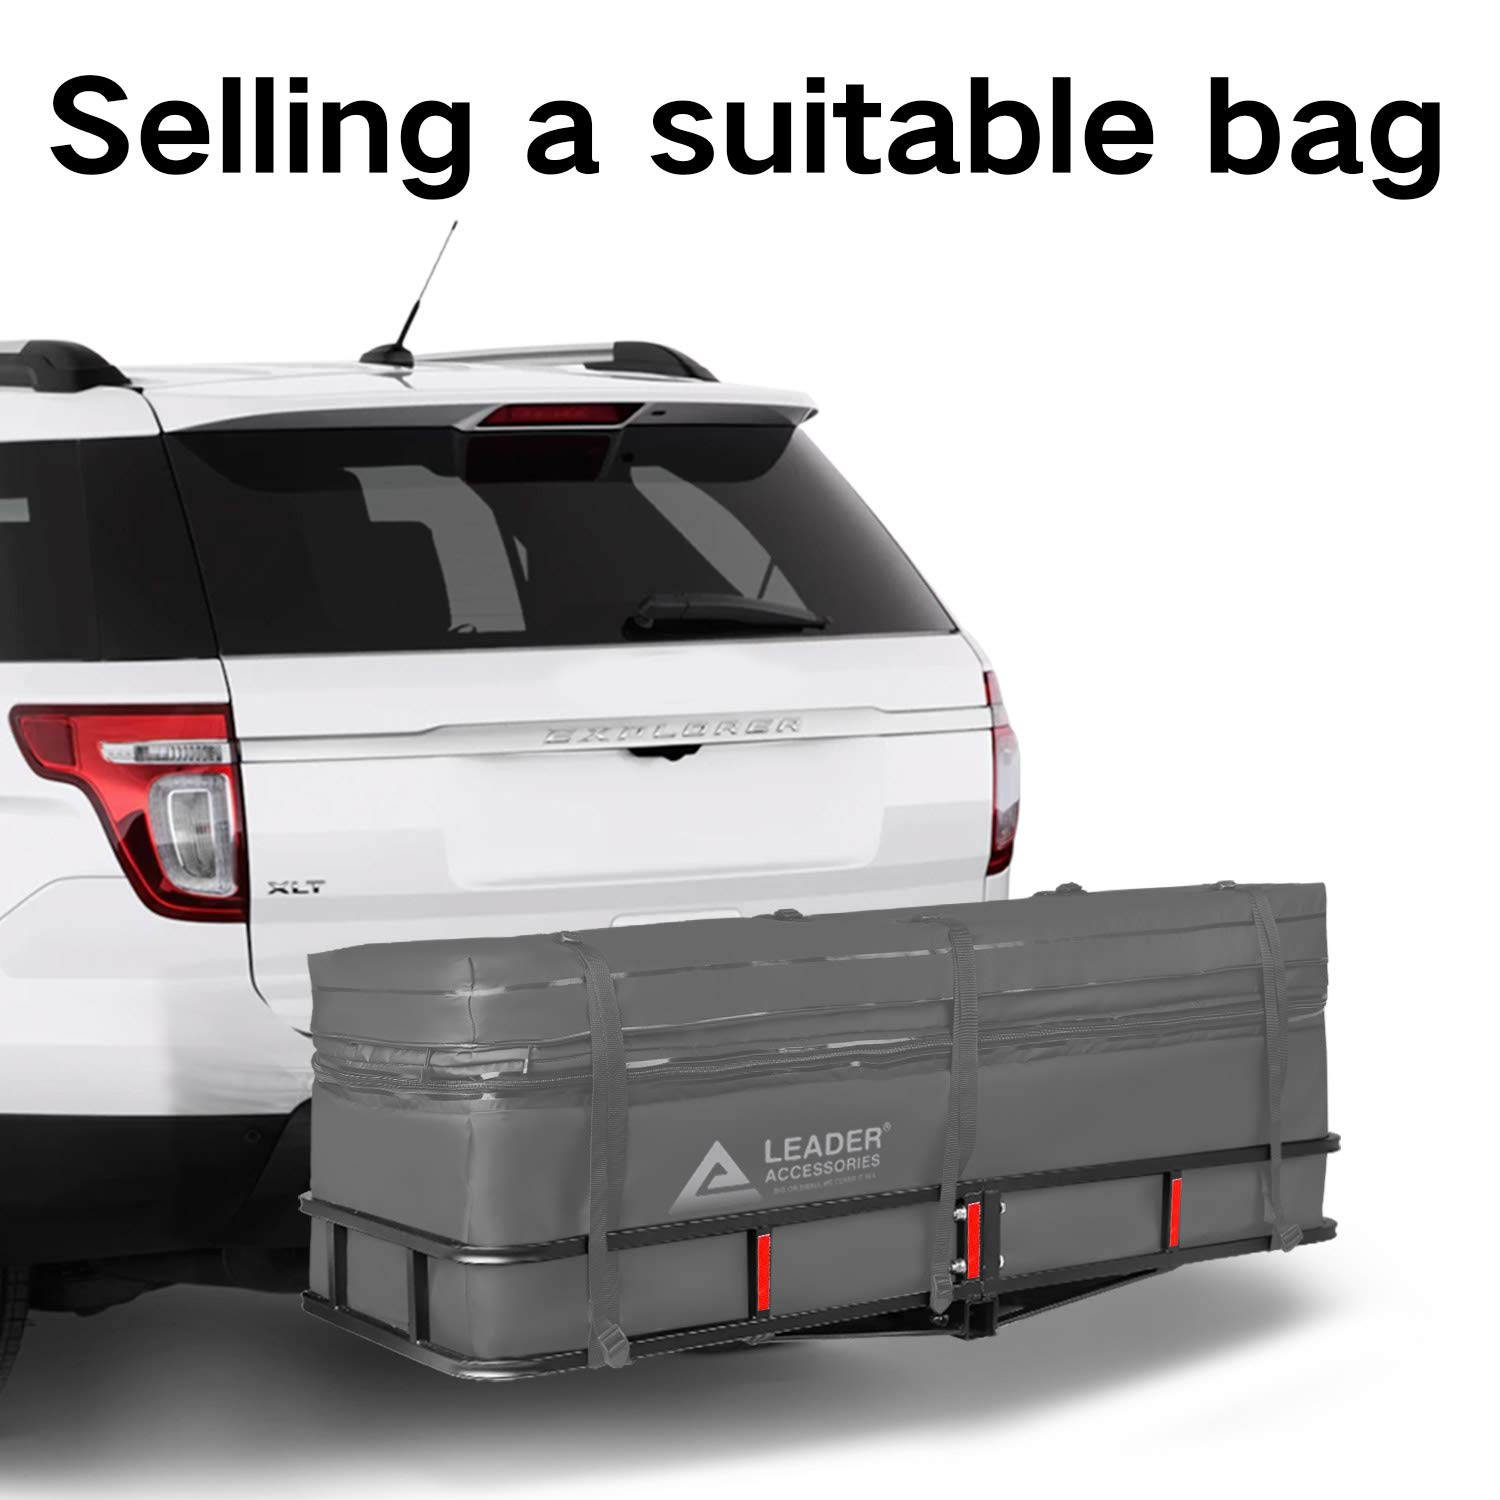 Product Size 60 L x 20.8 W x ft ft to 16.6cu Leader Accessories Hitch Cargo Carrier Bag Waterproof Extendable 13.8 cu 20-24 H